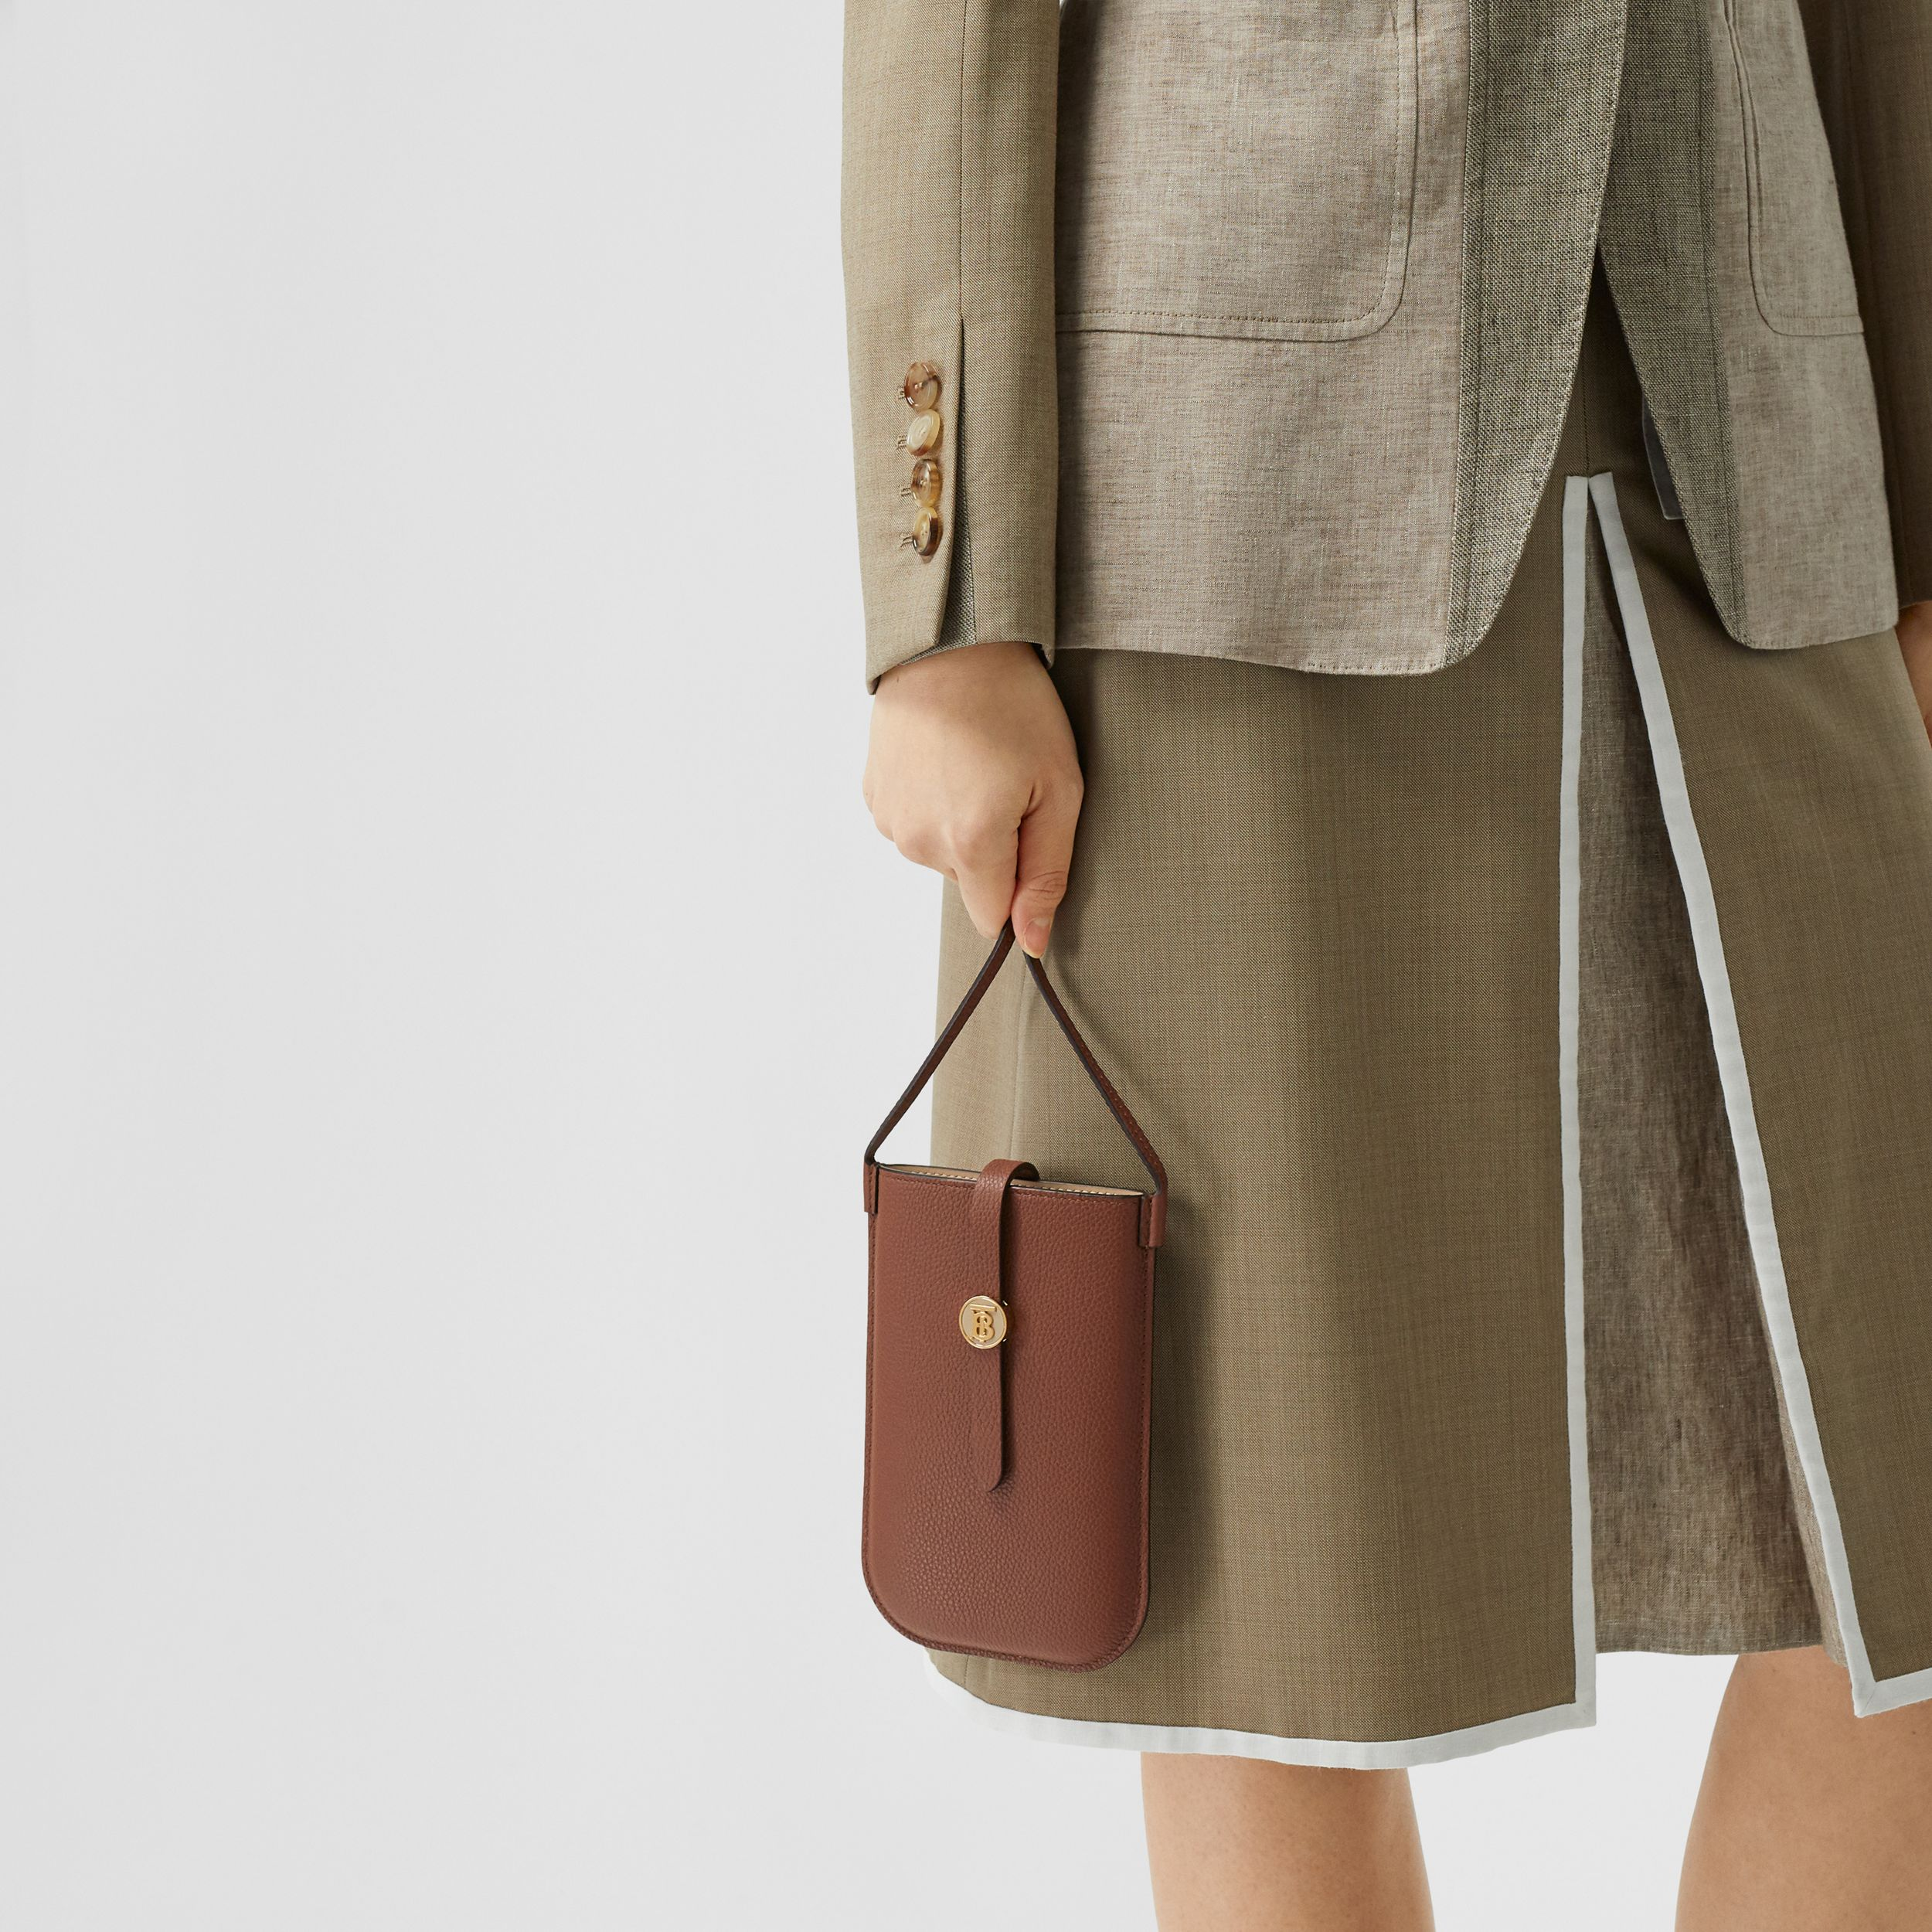 Leather Phone Case with Strap in Tan | Burberry - 3